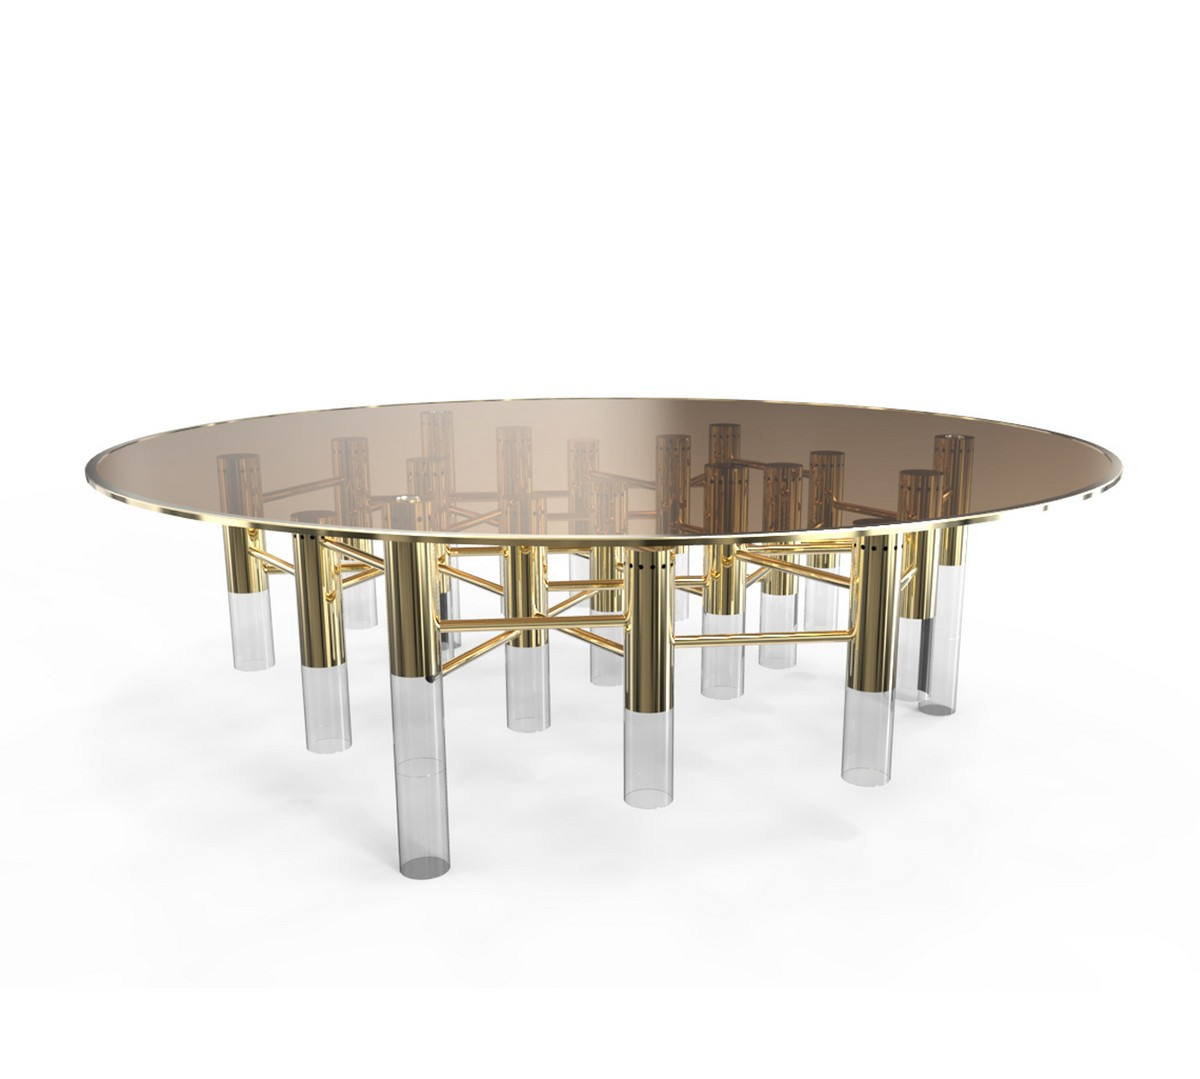 Top Vintage Coffee Tables coffee tables Top Vintage Coffee Tables konstantin2